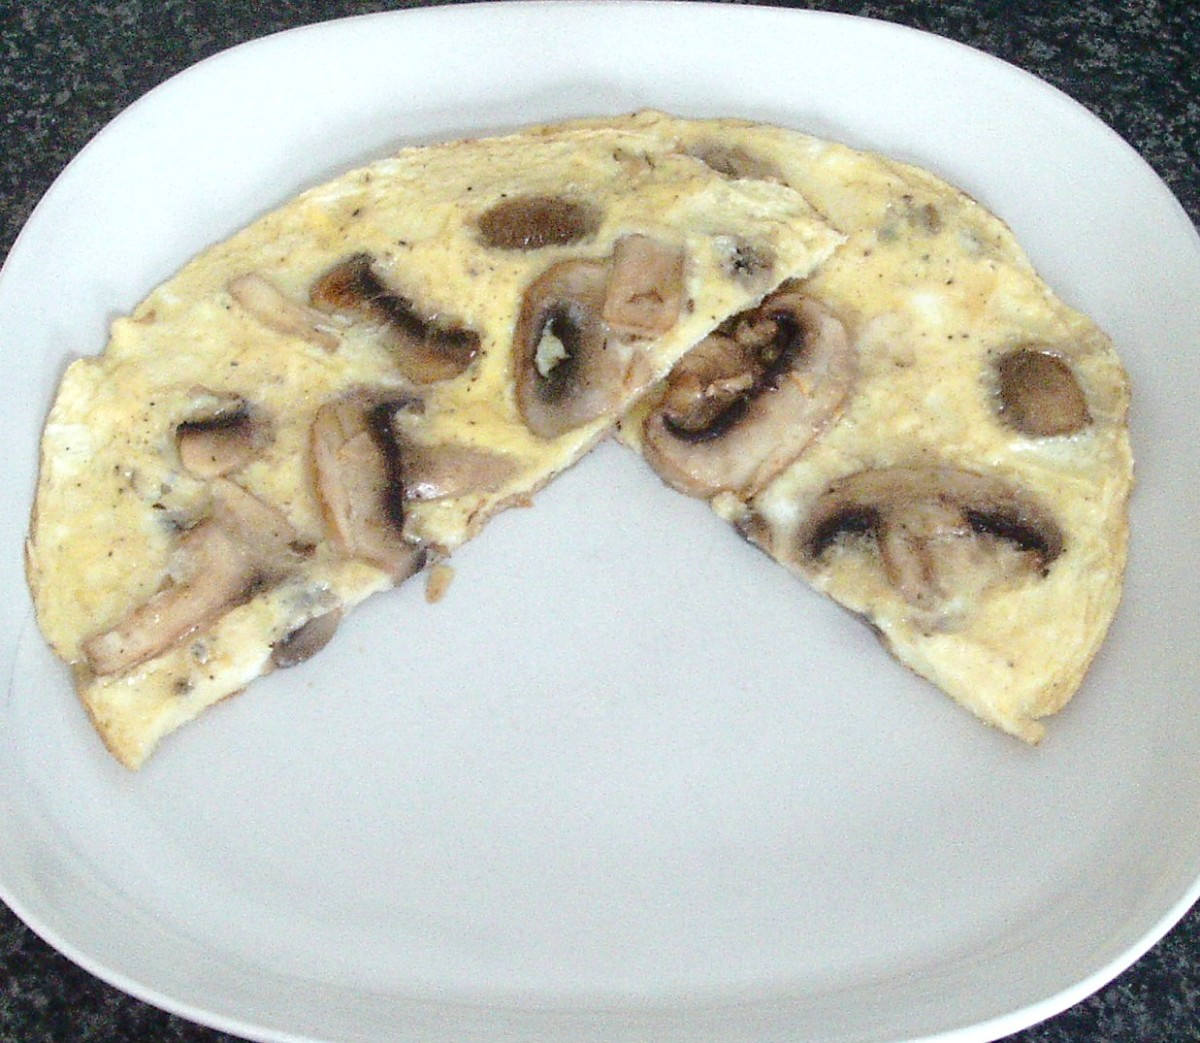 Garlic mushrooms tortilla is sliced in half and plated